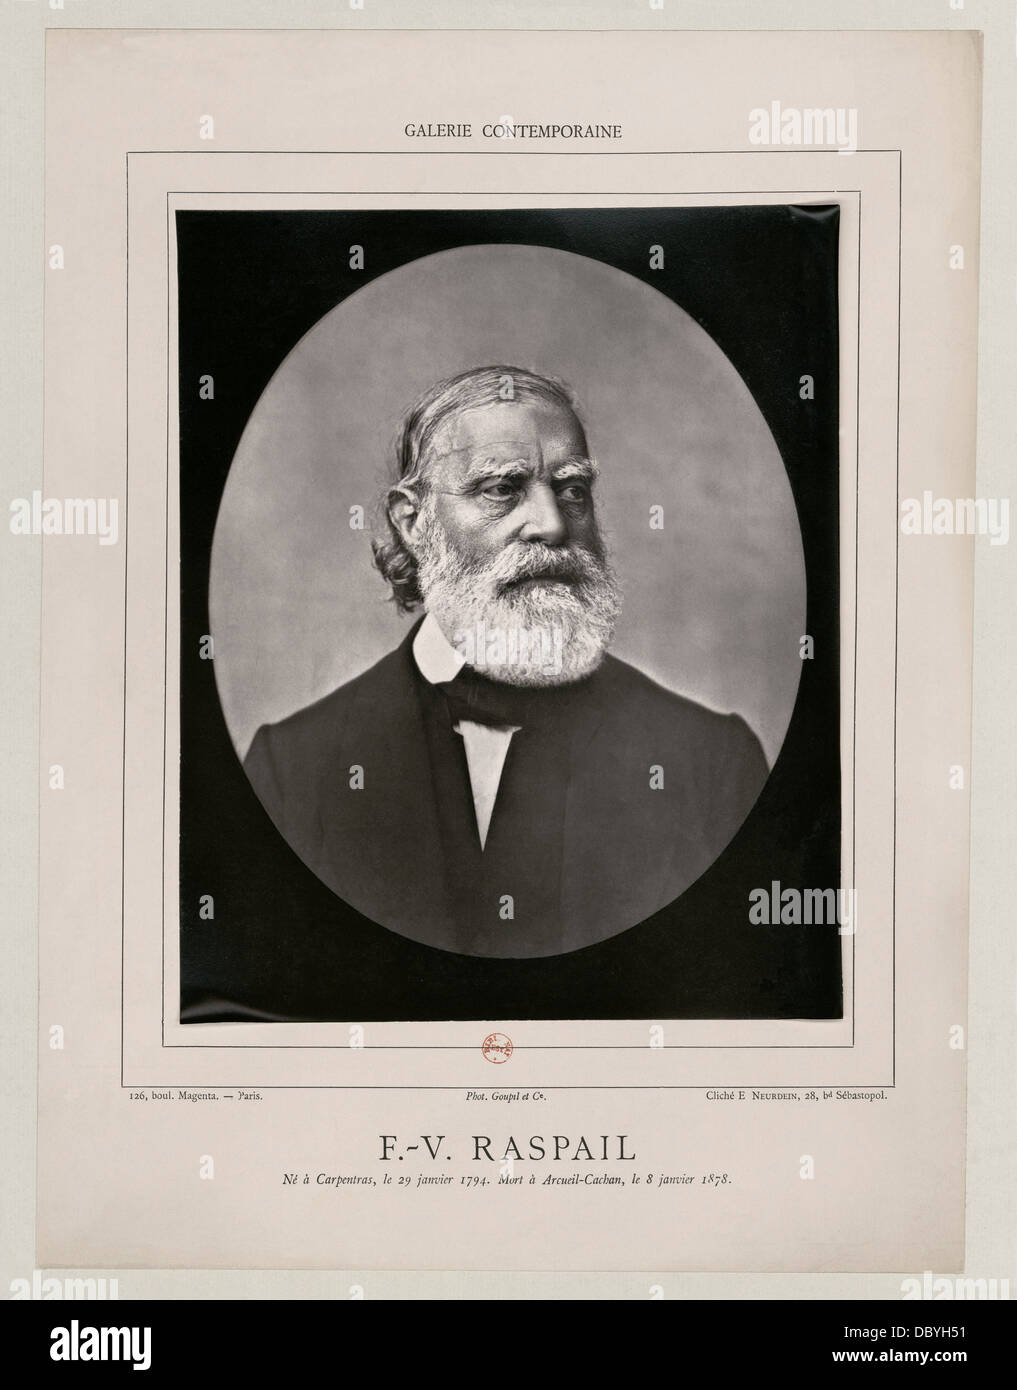 François-Vincent Raspail (1794-1878), french chemist, M.D. and politician. - Stock Image